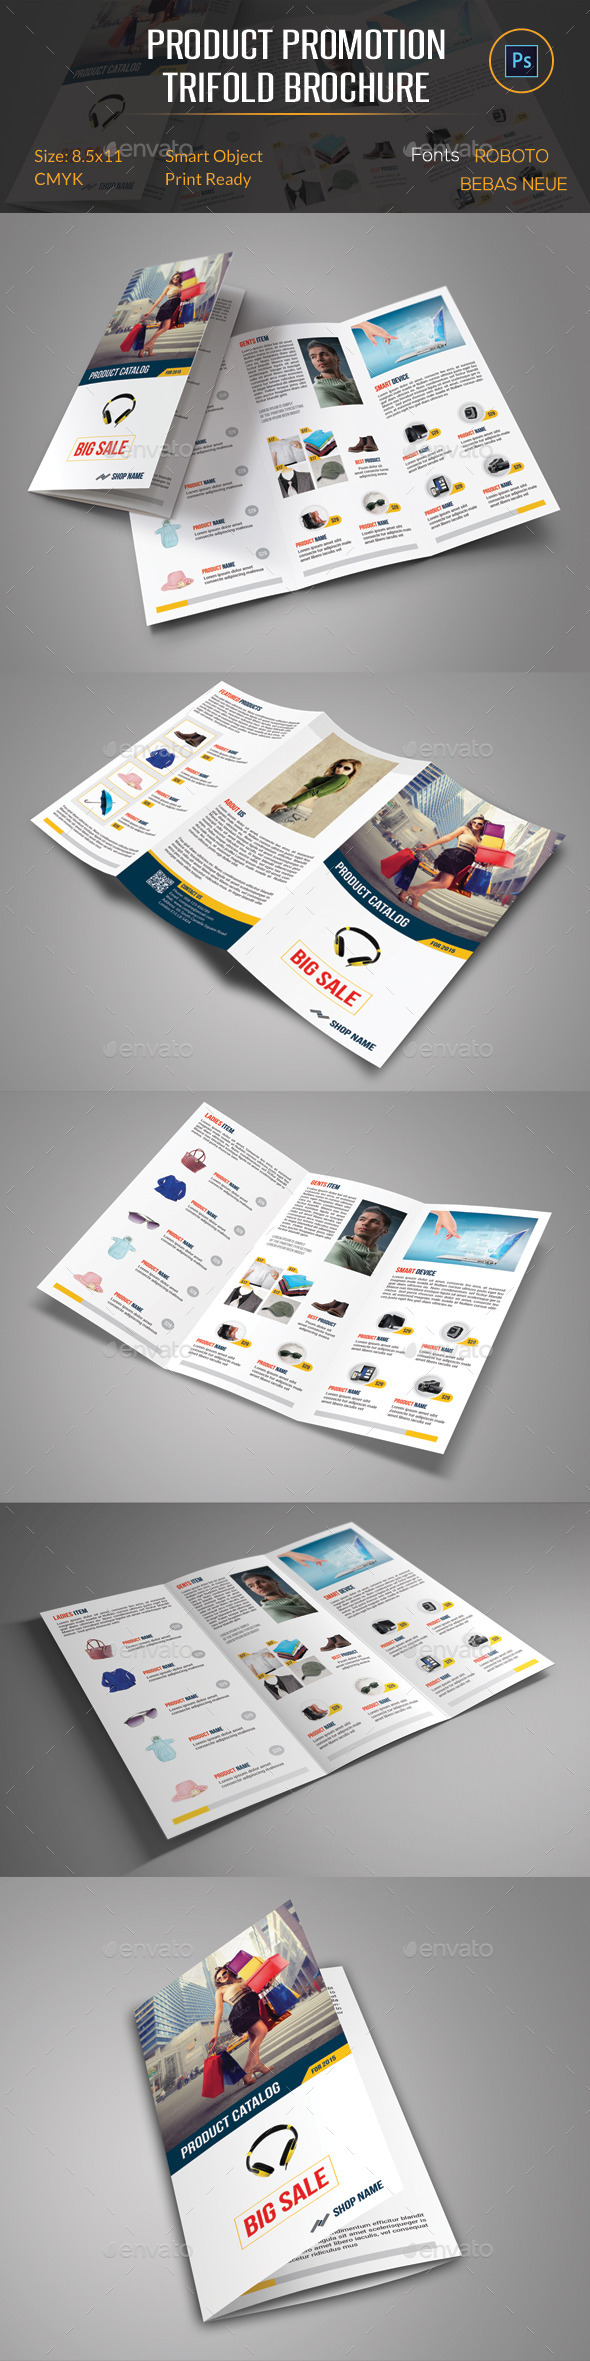 GraphicRiver Product Promotion Trifold Brochure 11925544